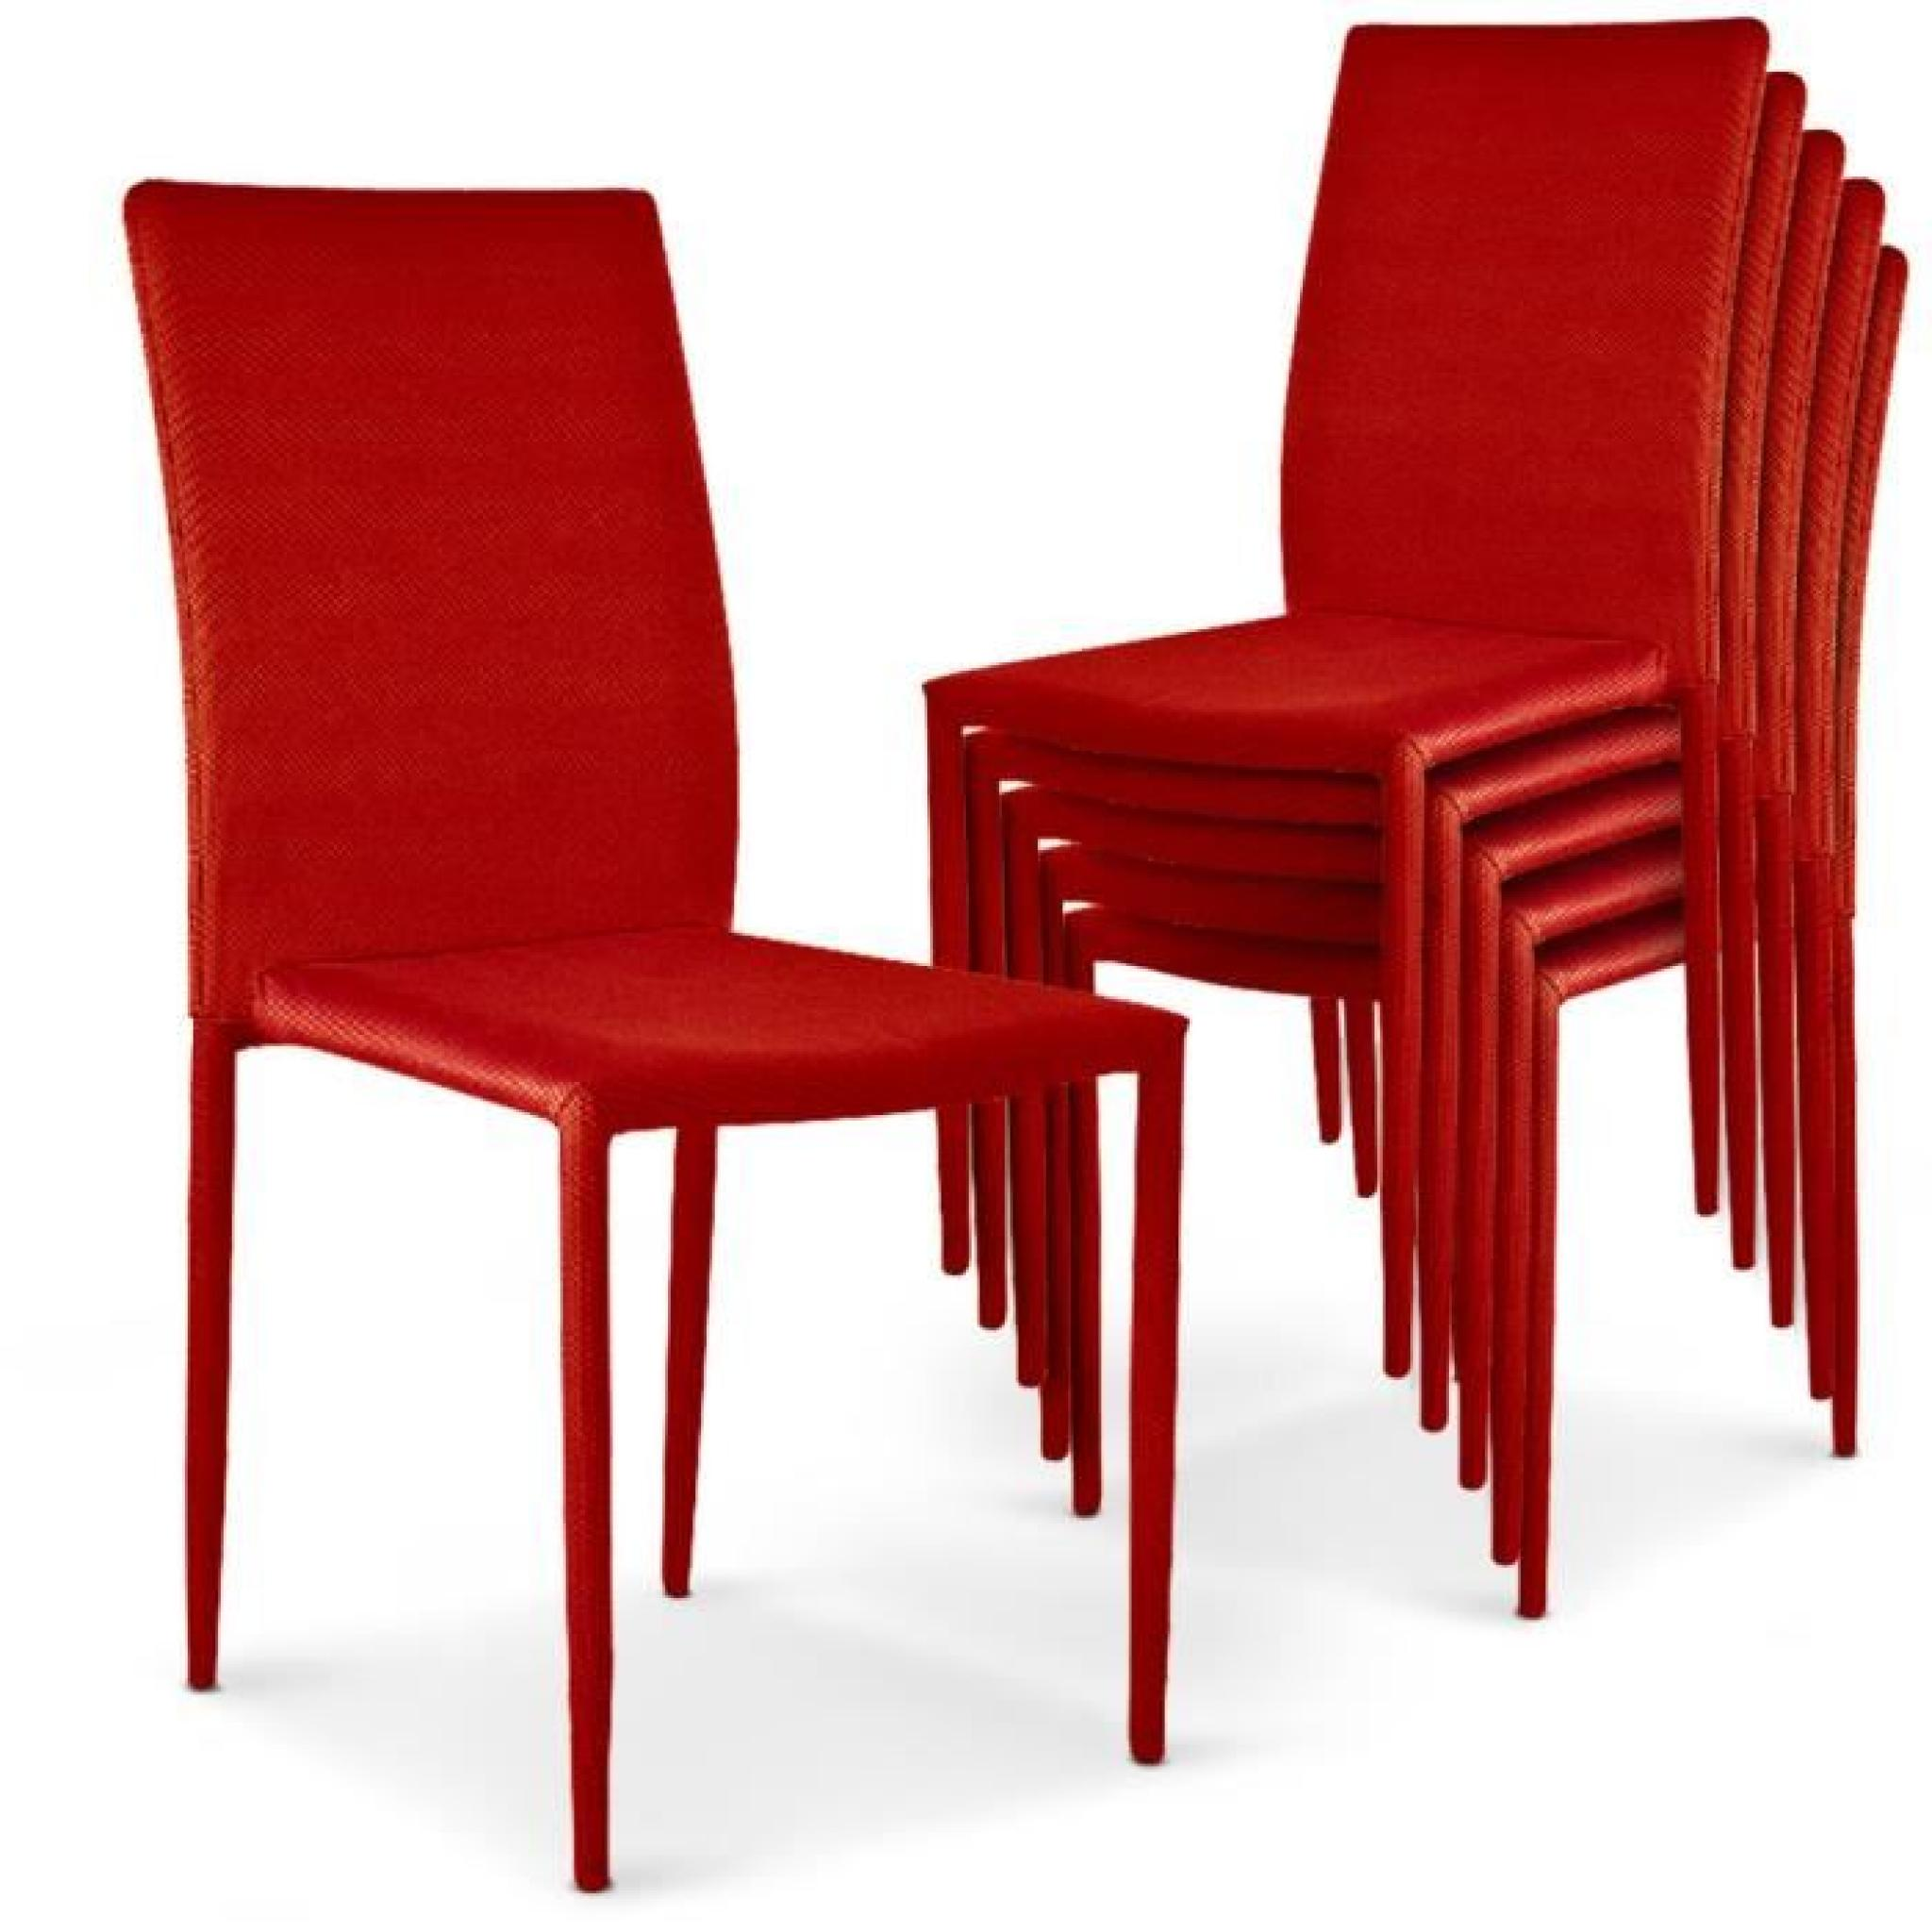 lot de 6 chaises empilables modan rouge achat vente. Black Bedroom Furniture Sets. Home Design Ideas